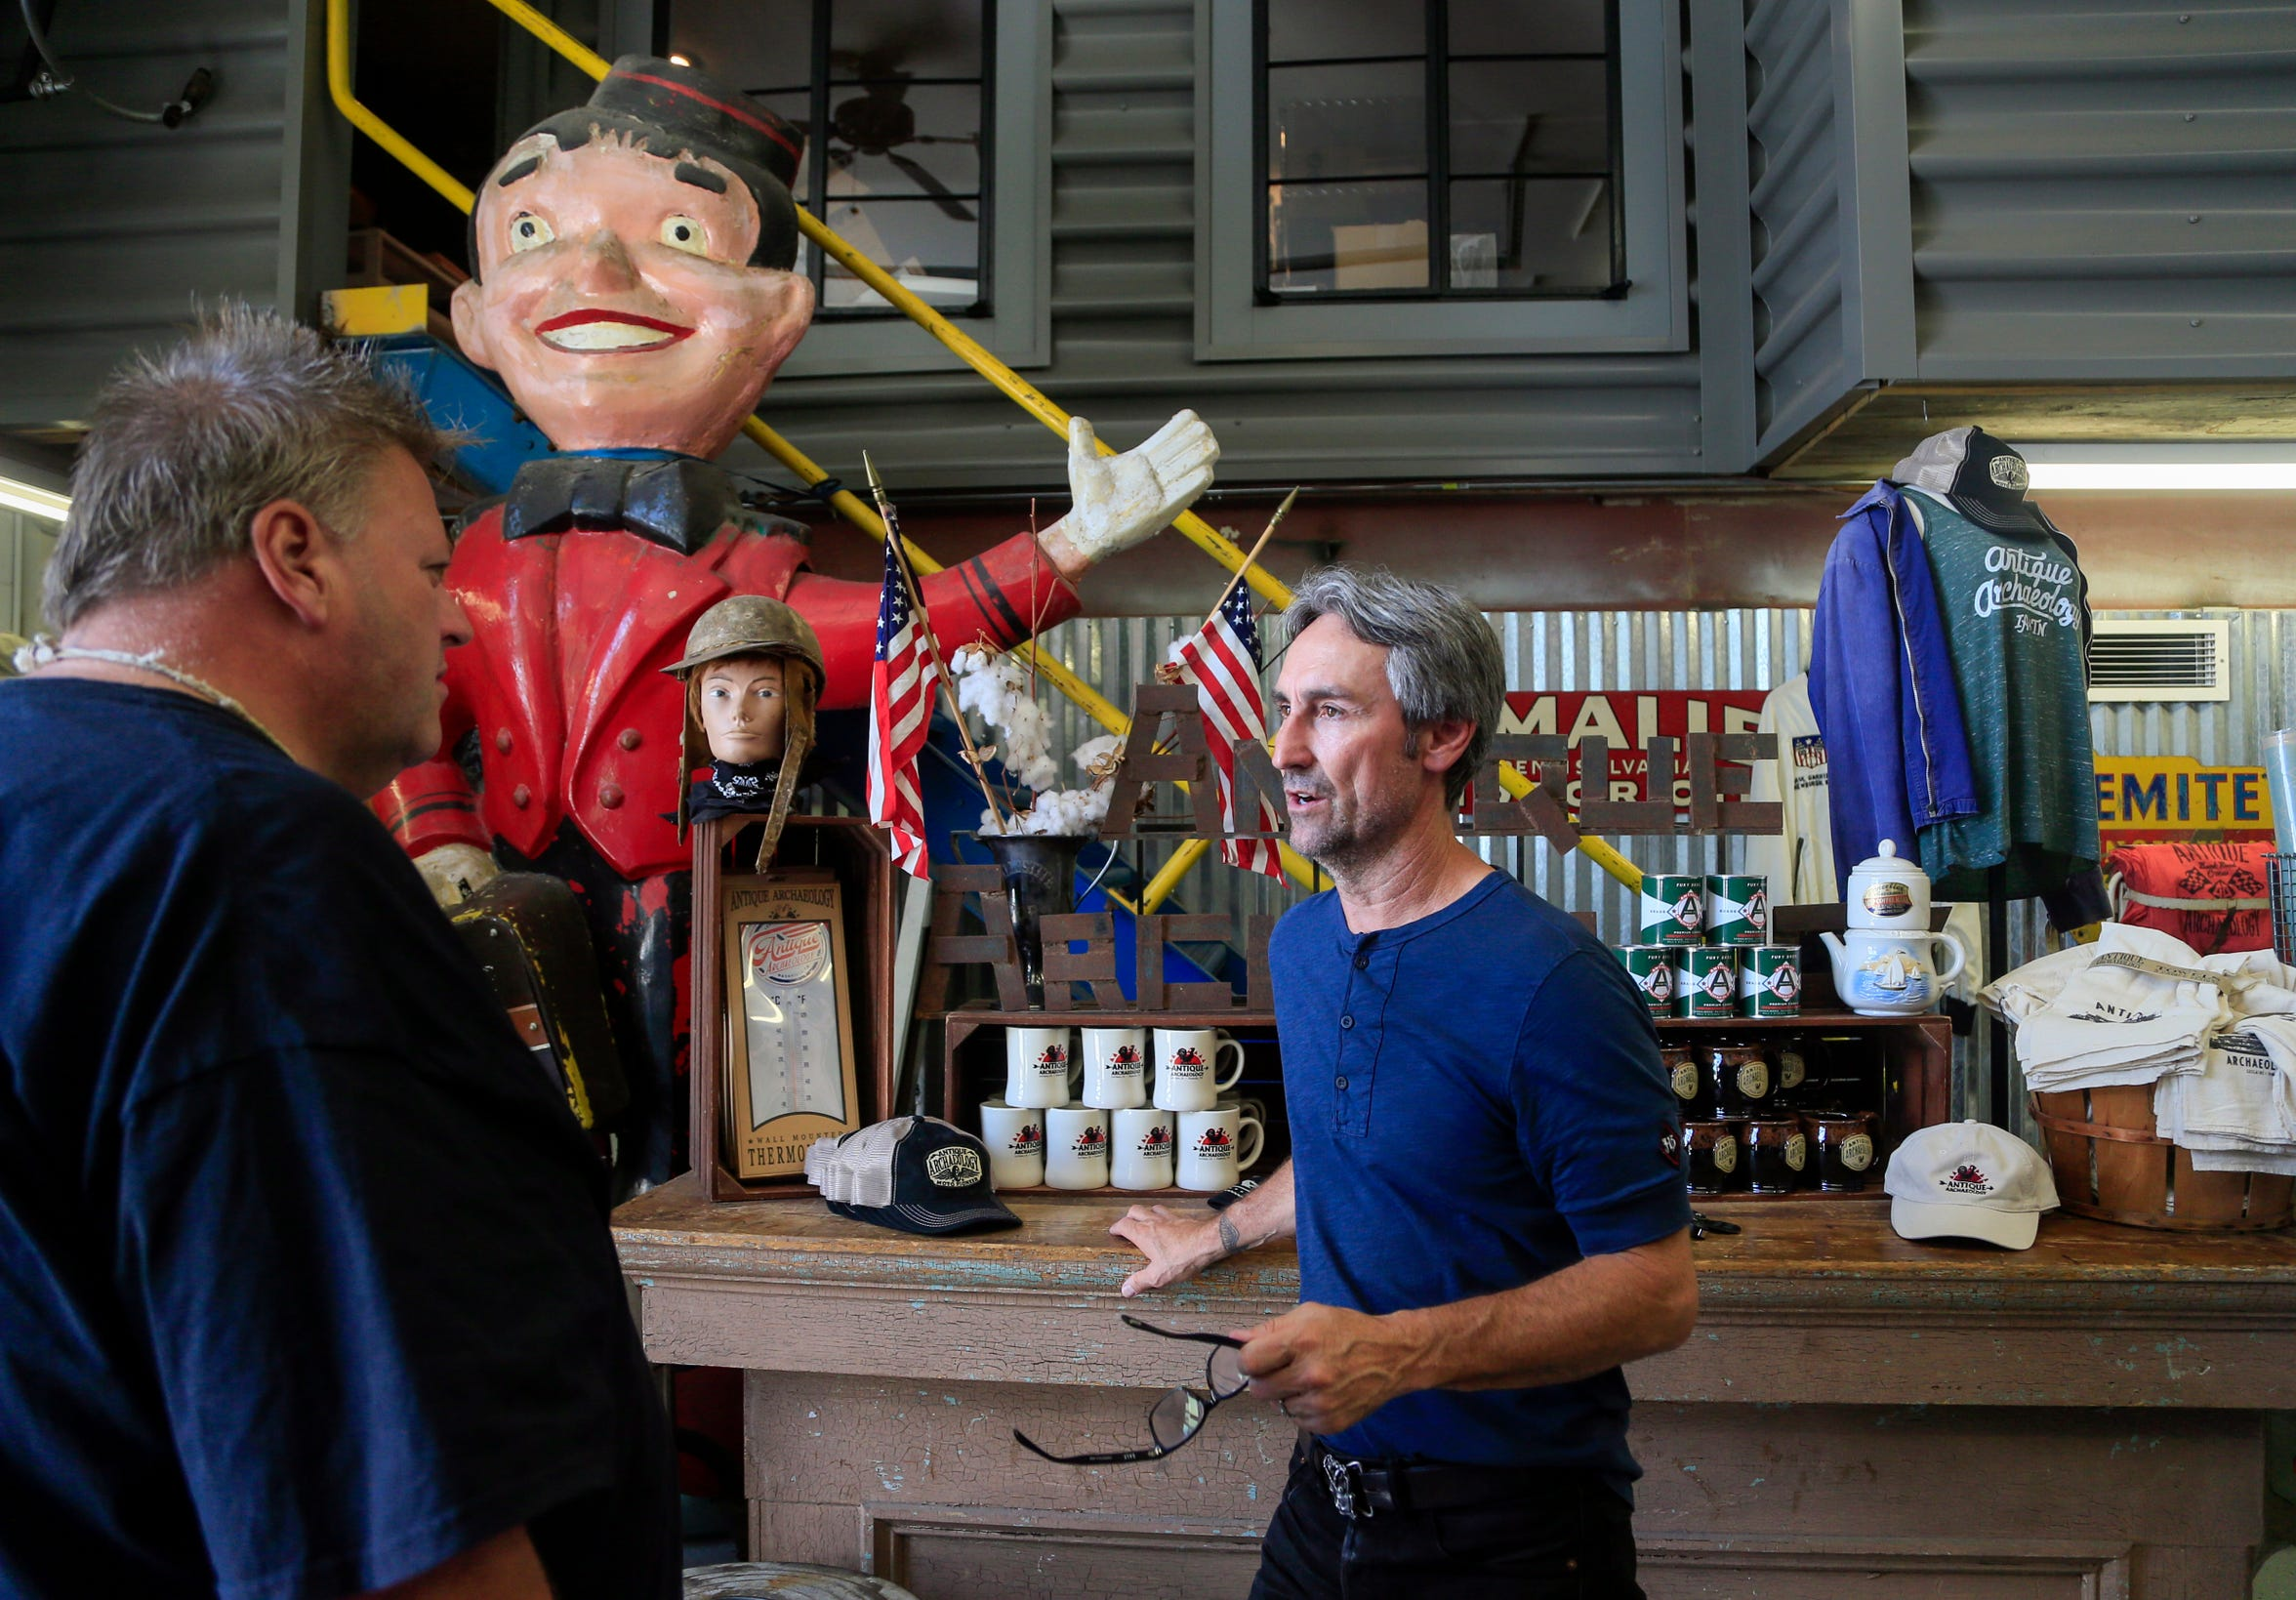 Mike Wolfe of American Pickers fame chats with customers at his store Antique Archaeology in LeClaire June 27, 2018.